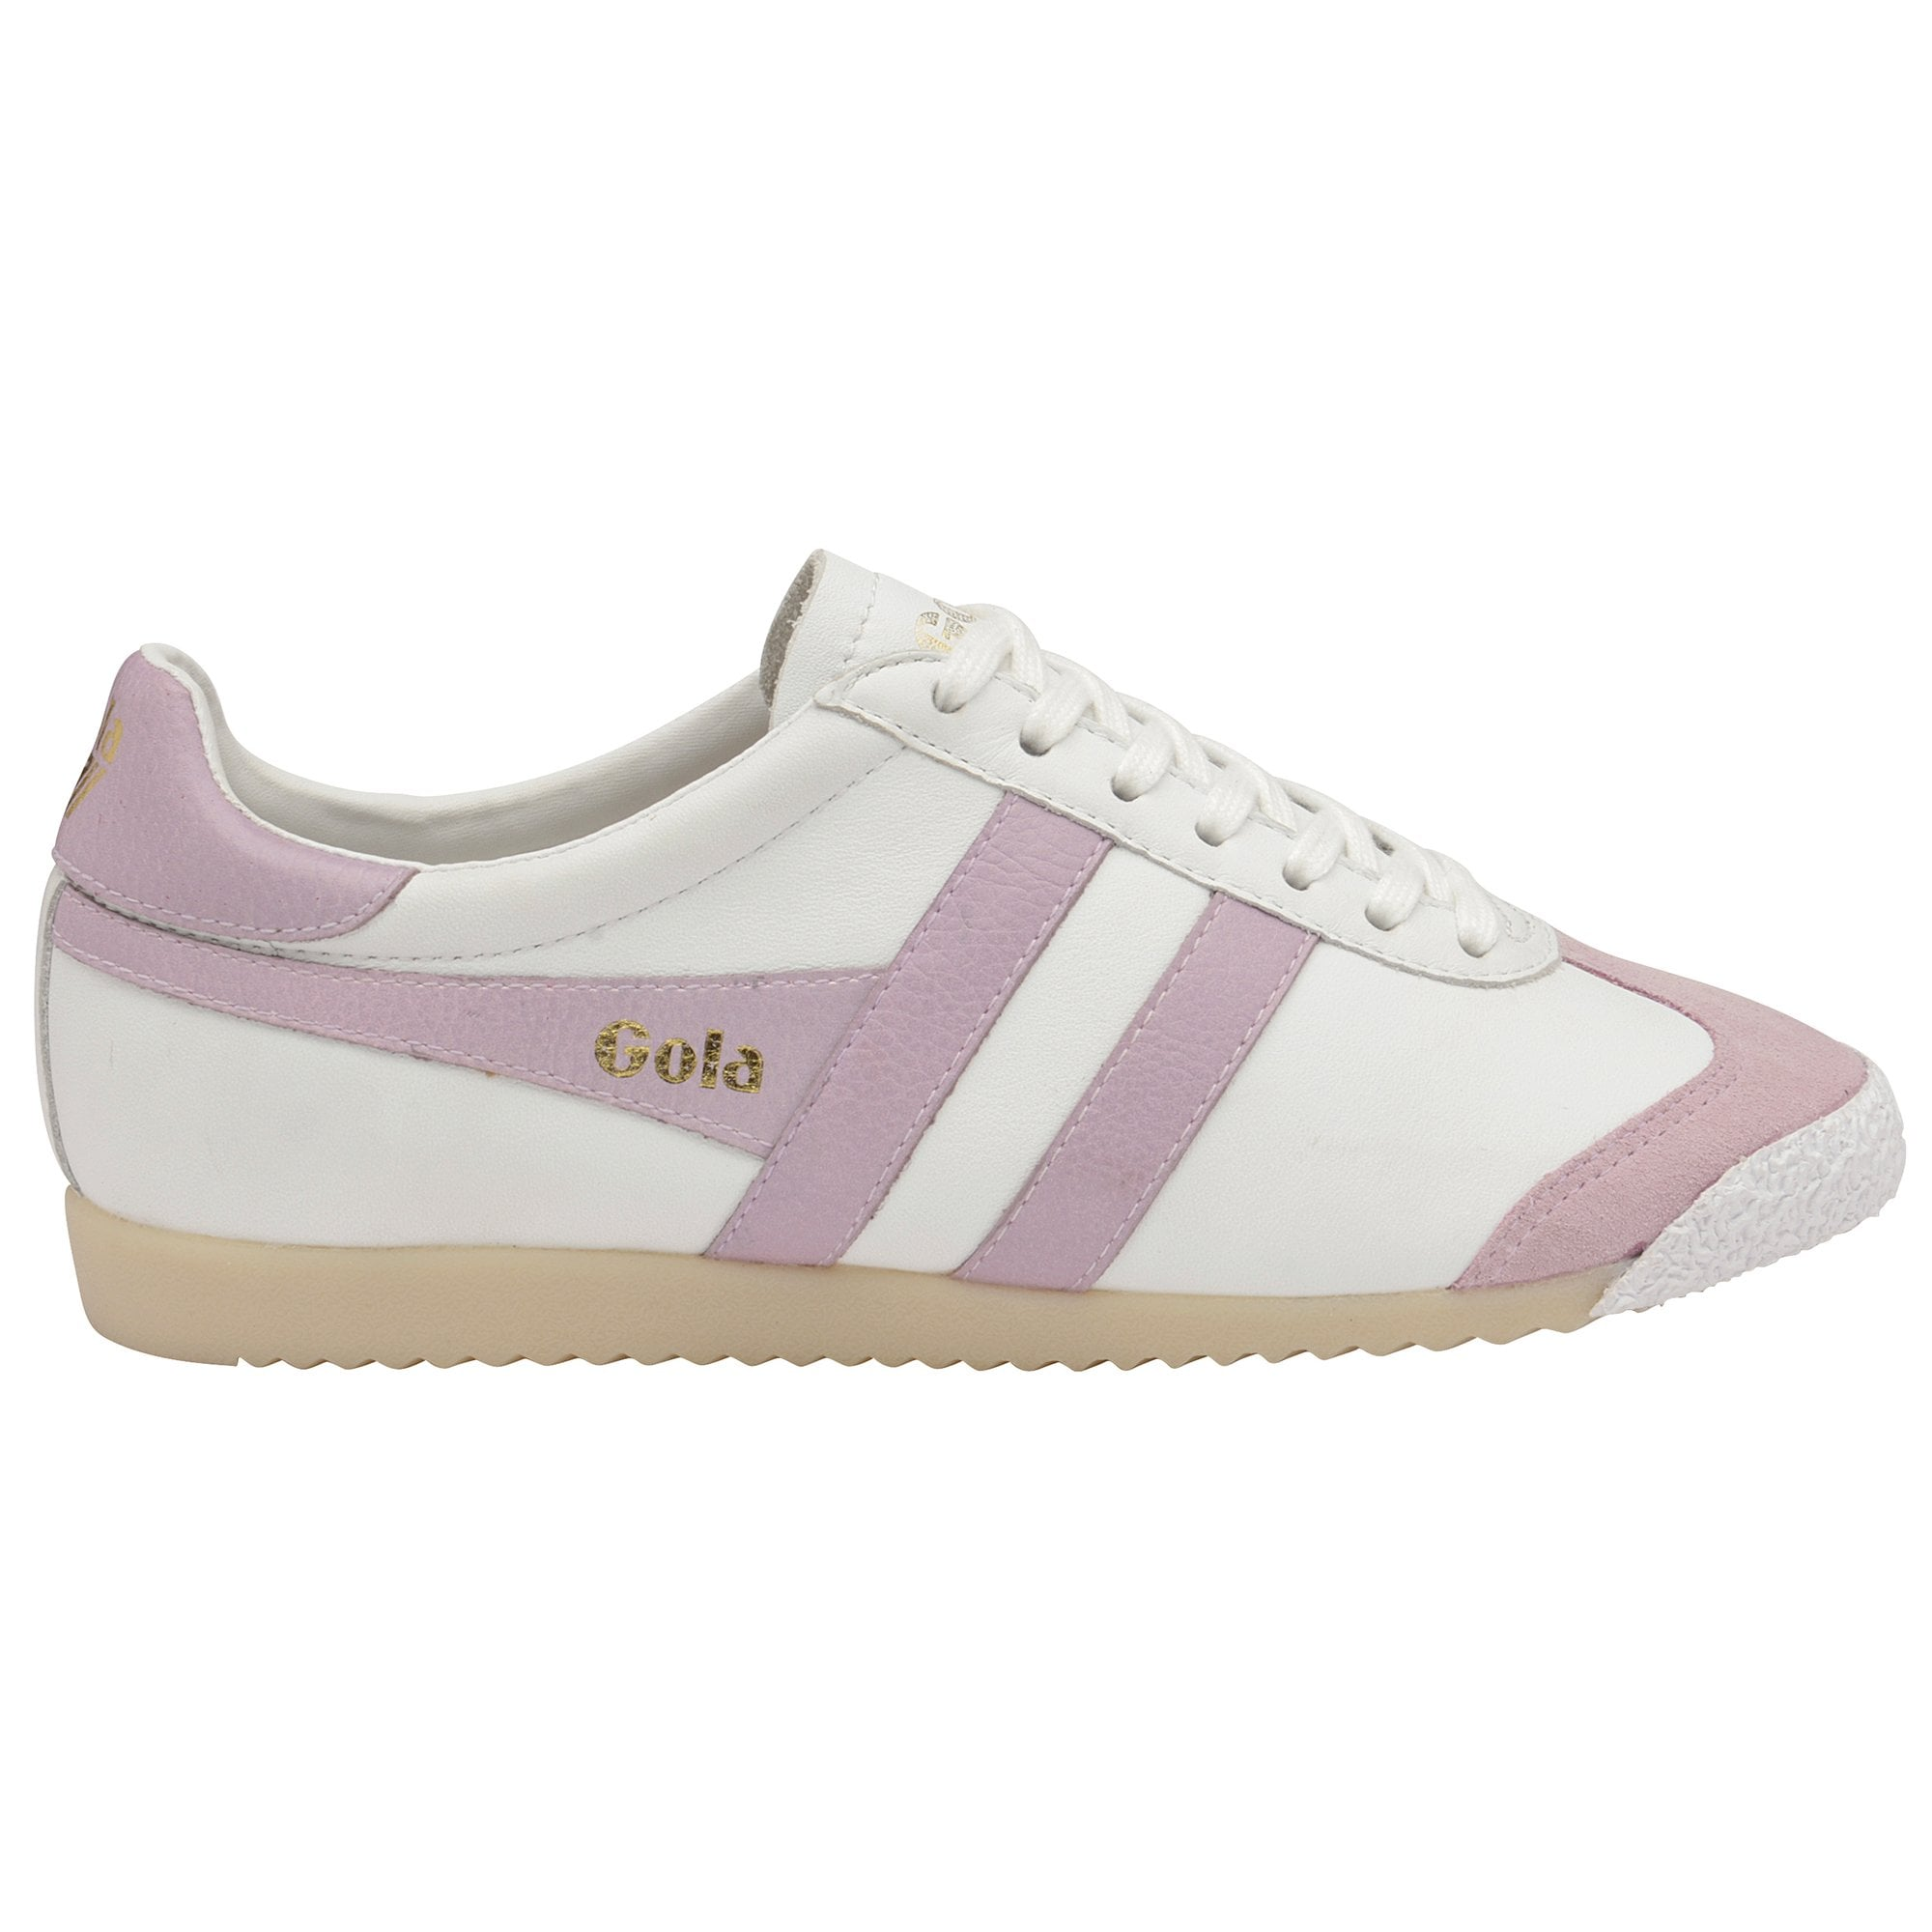 Buy Gola womens Harrier Leather trainer